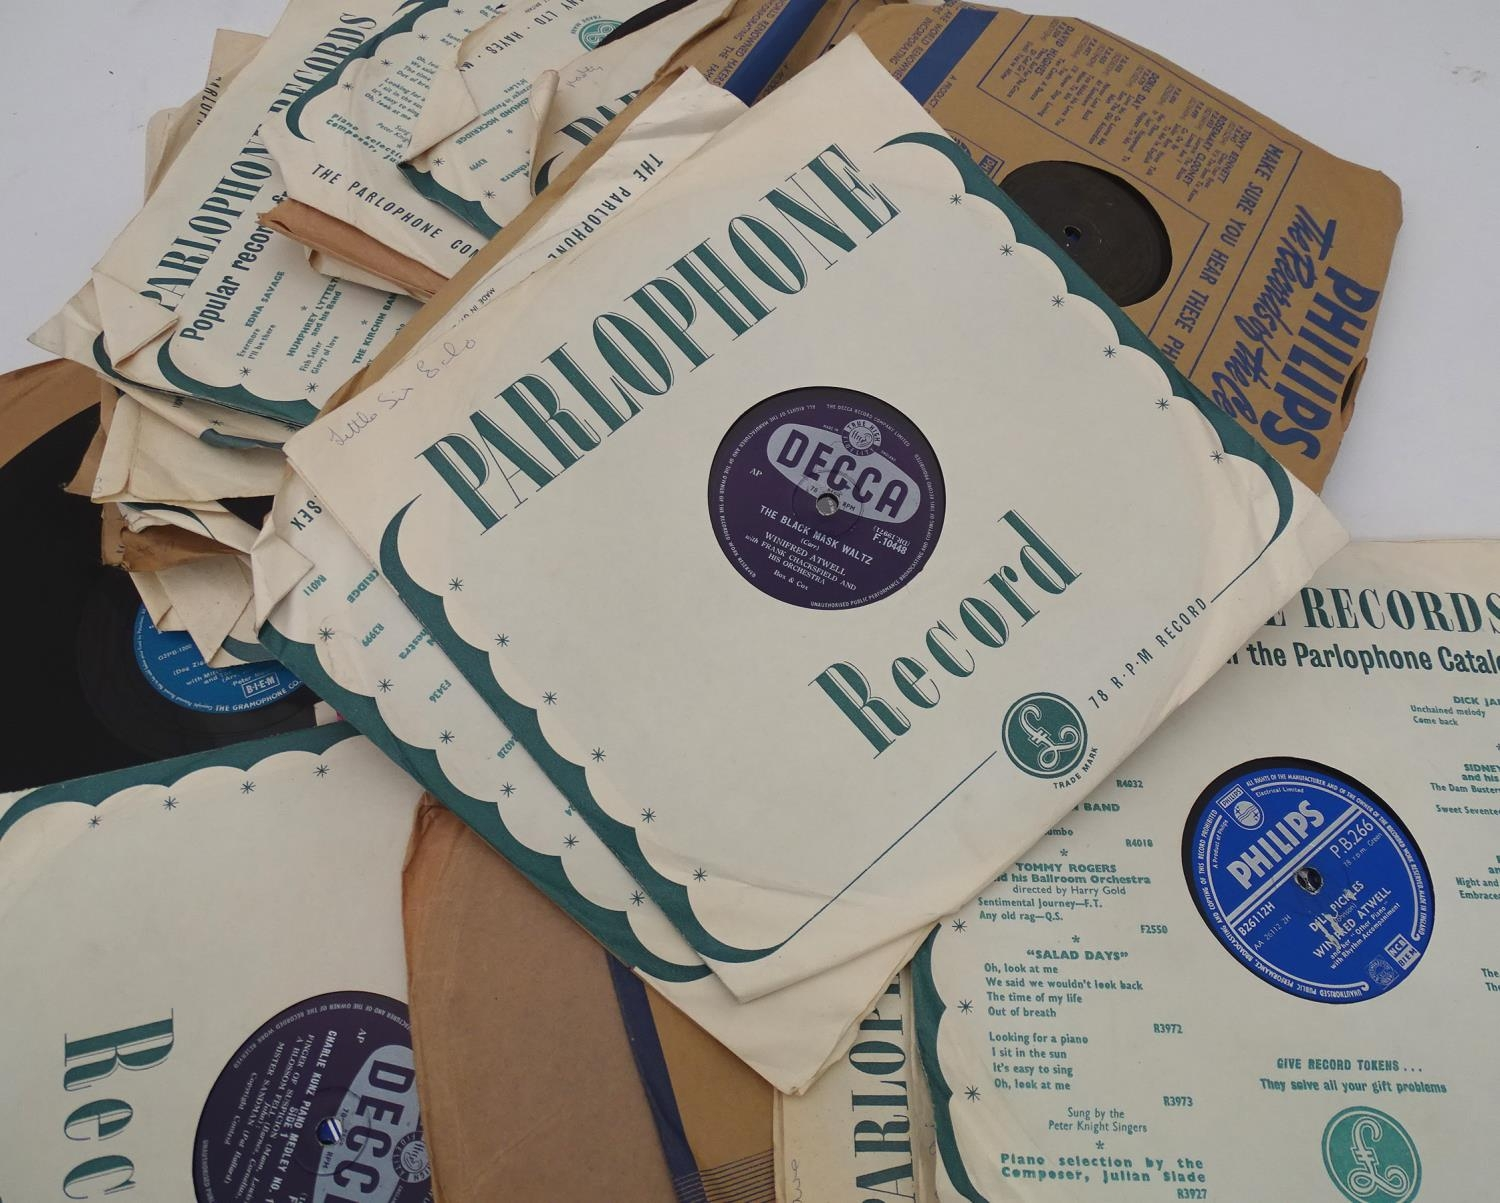 A quantity of 78 RPM vinyl records Please Note - we do not make reference to the condition of lots - Image 2 of 7